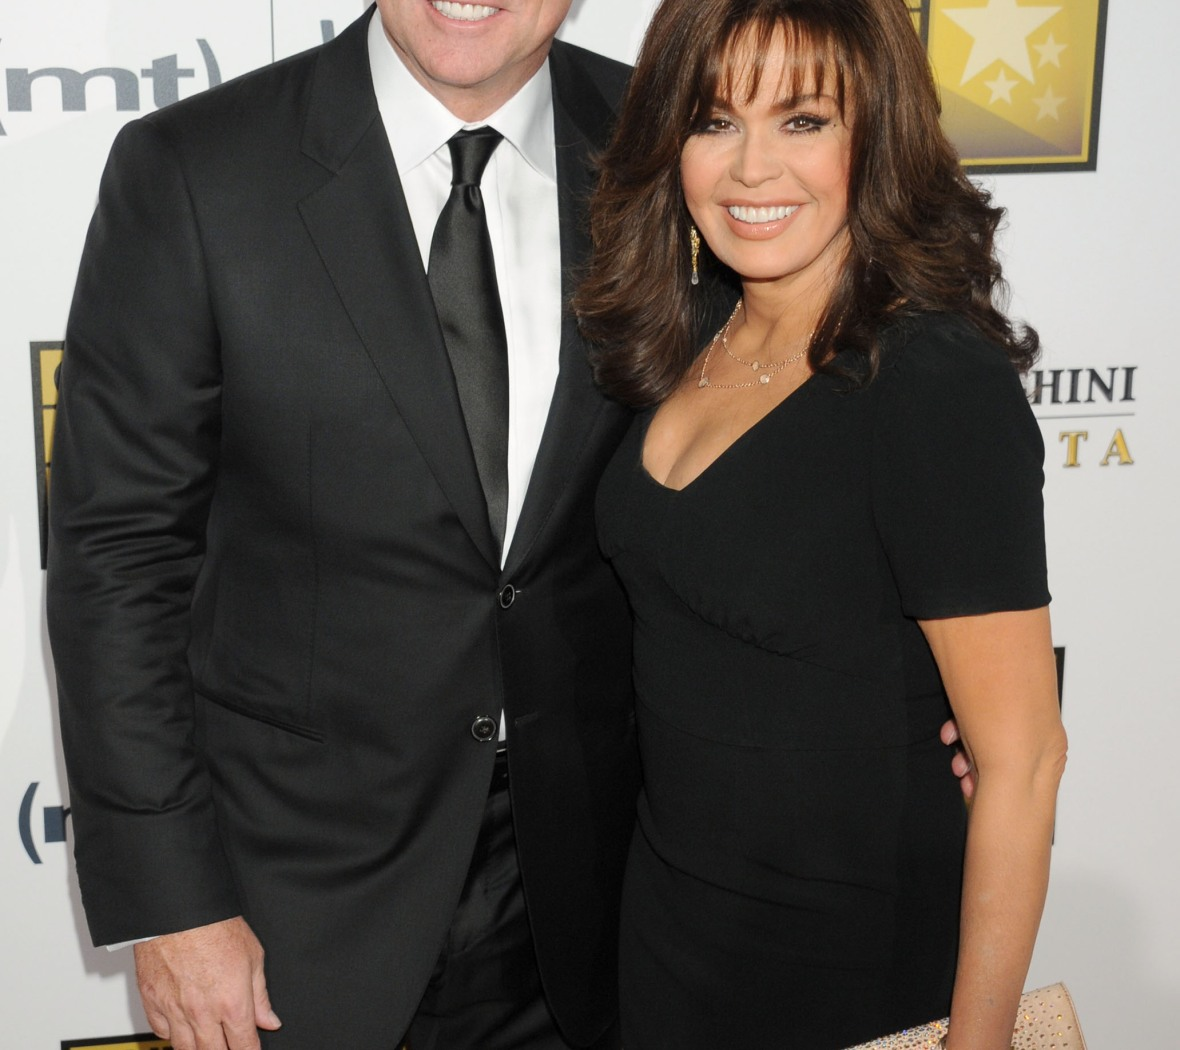 marie osmond and her husband getty images